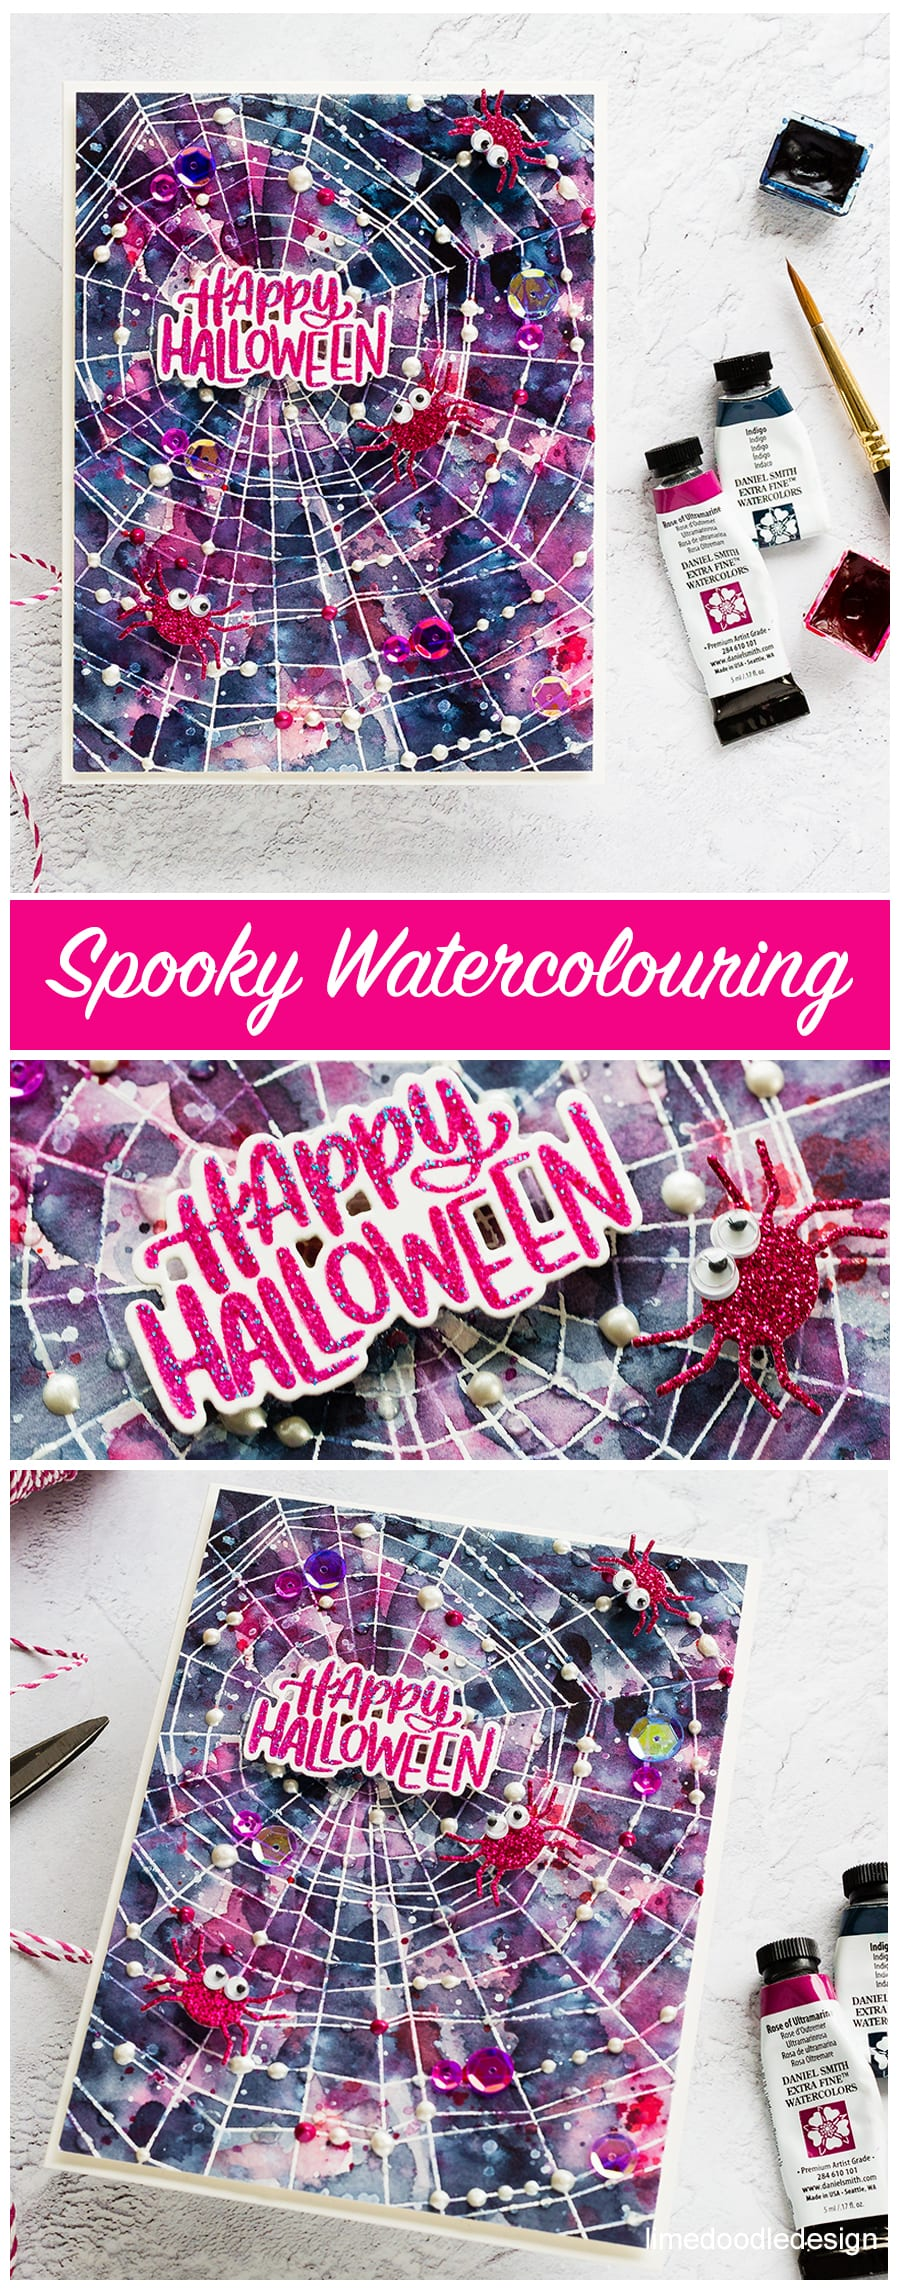 Spooky halloween watercoloured handmade card by Debby Hughes using products from Simon Says Stamp. Find out more here: https://limedoodledesign.com/2018/09/spooky-watercolouring/